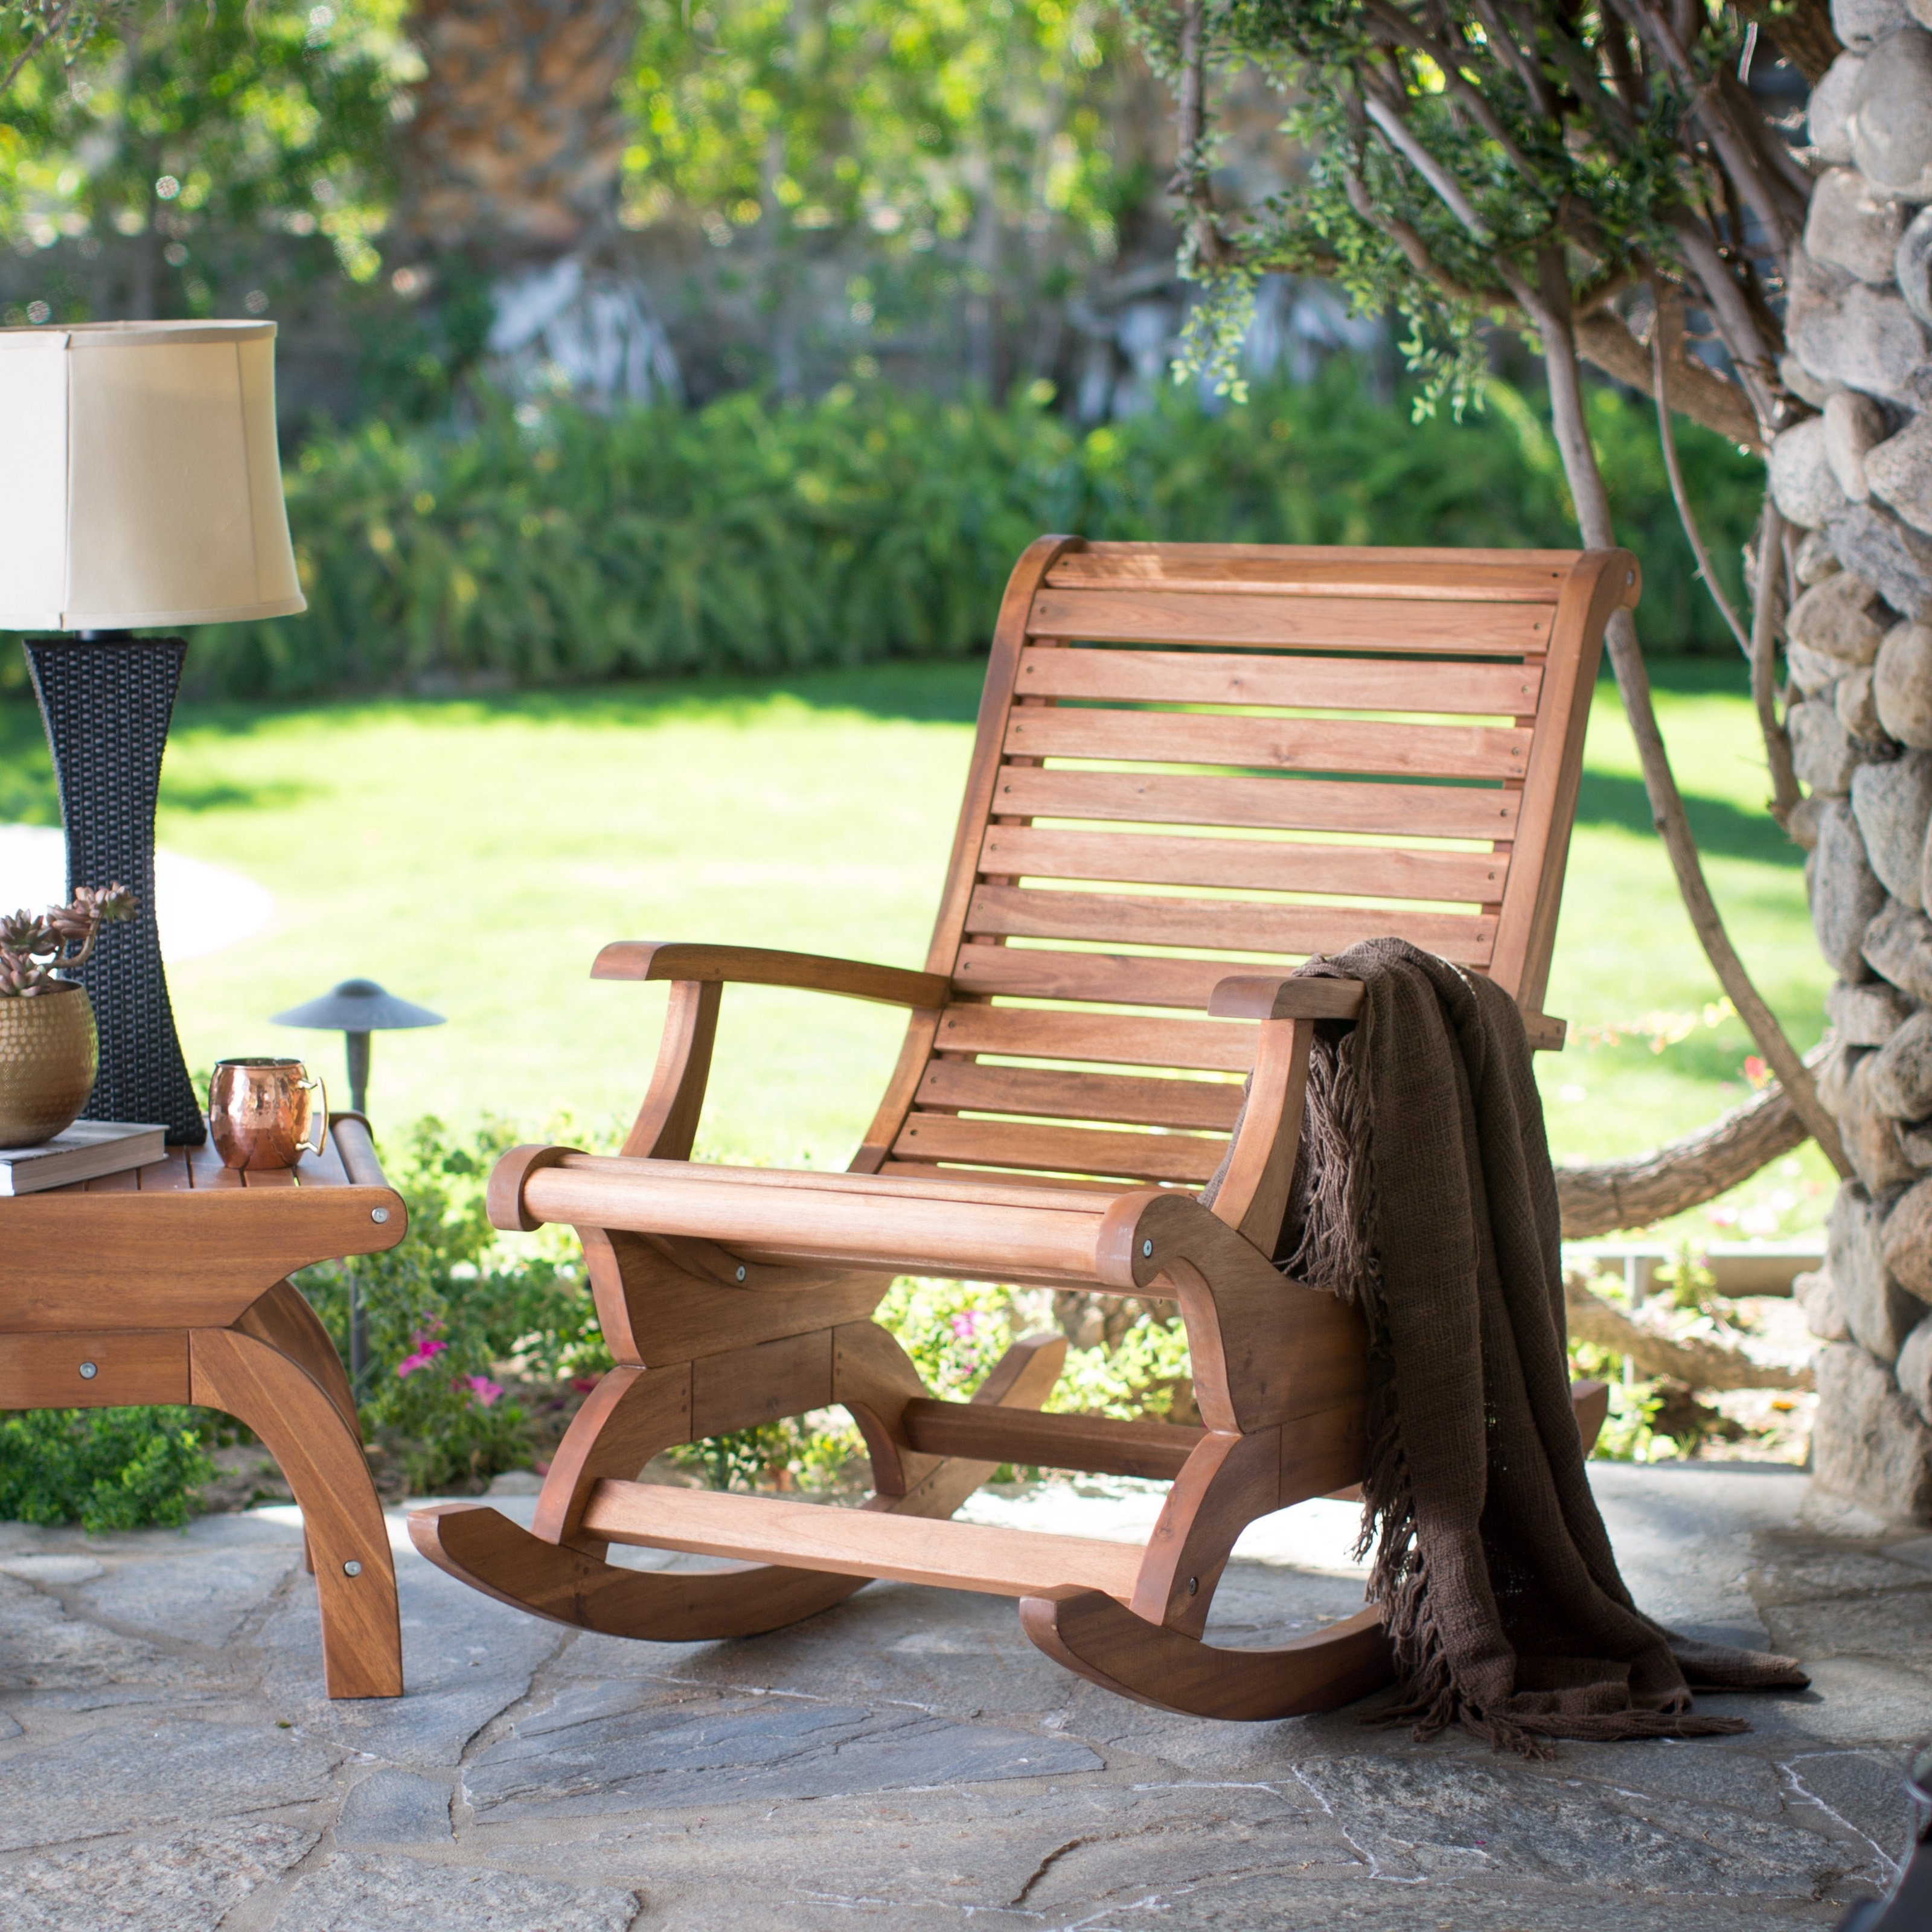 Belham Living Avondale Oversized Outdoor Rocking Chair – Natural With Regard To Outdoor Rocking Chairs With Table (#2 of 15)